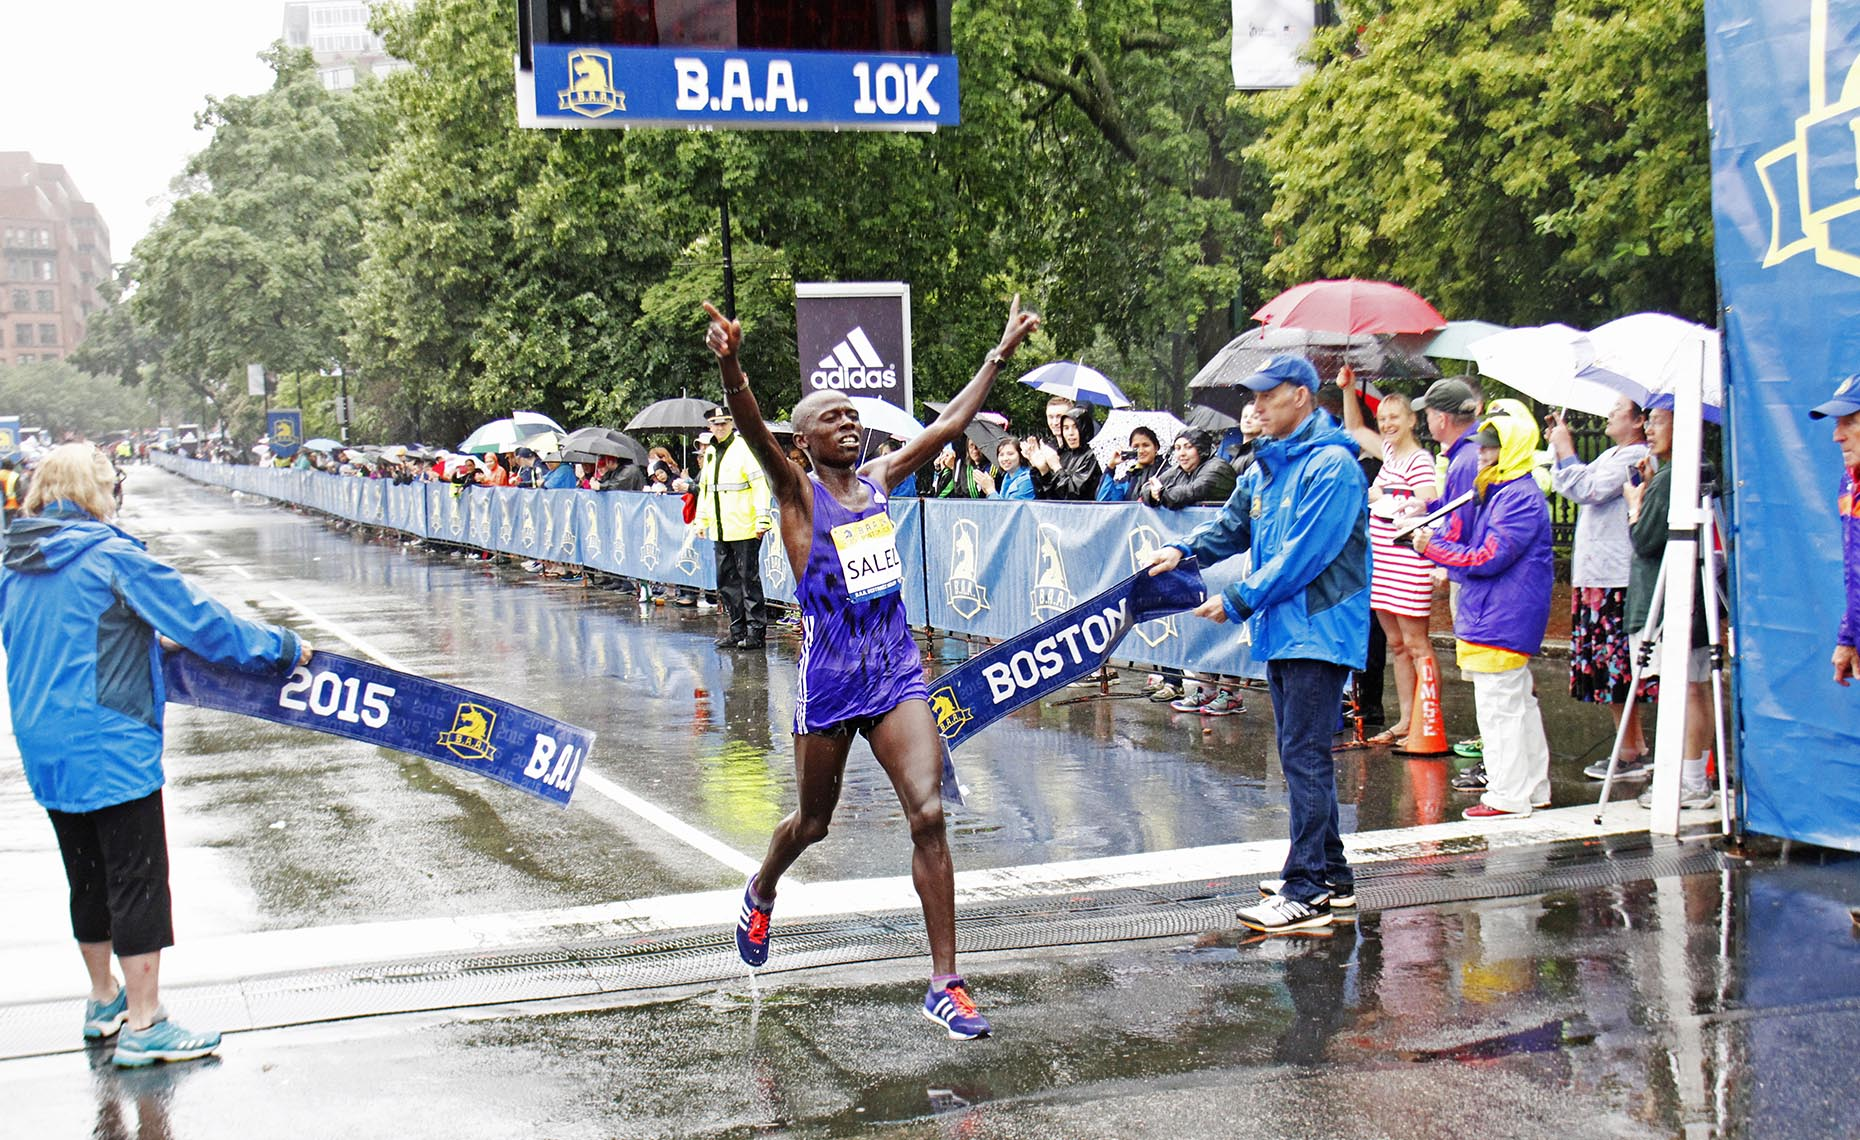 Salel Winning BAA 10K.JPG